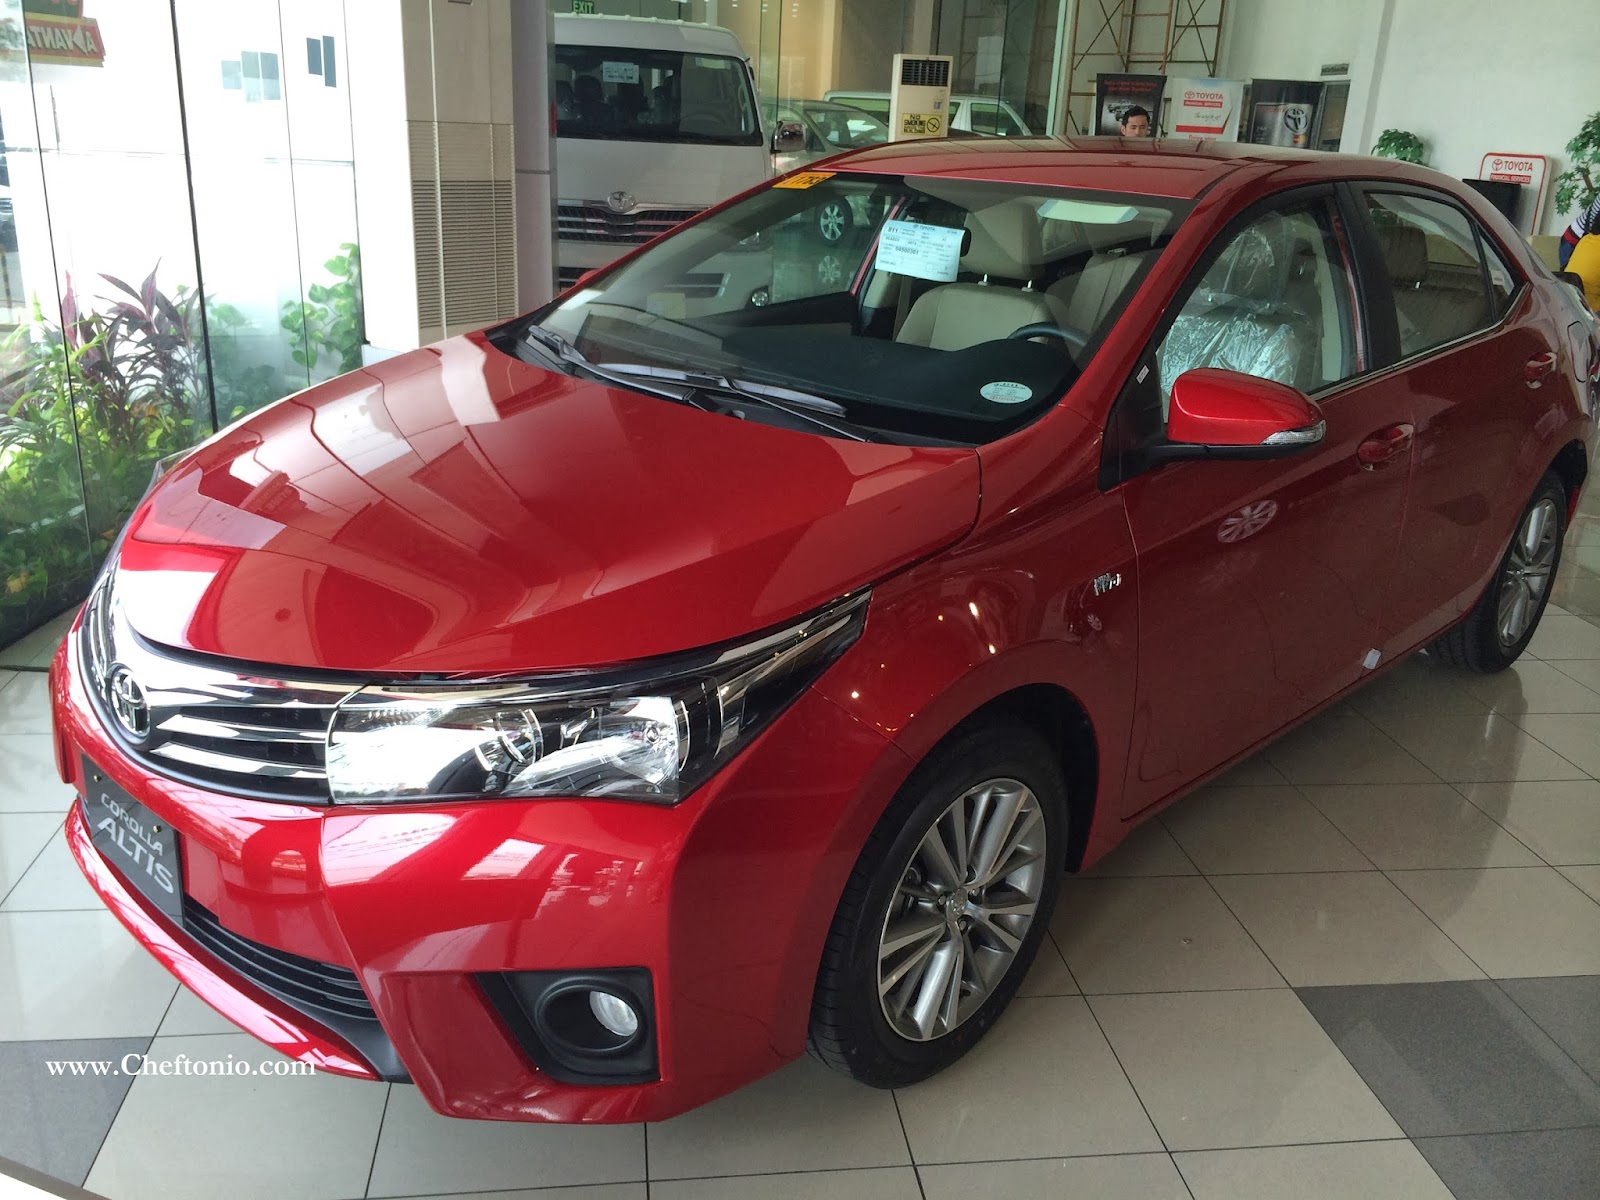 Toyota Corolla Altis 2014 Colors, Photos, And Price